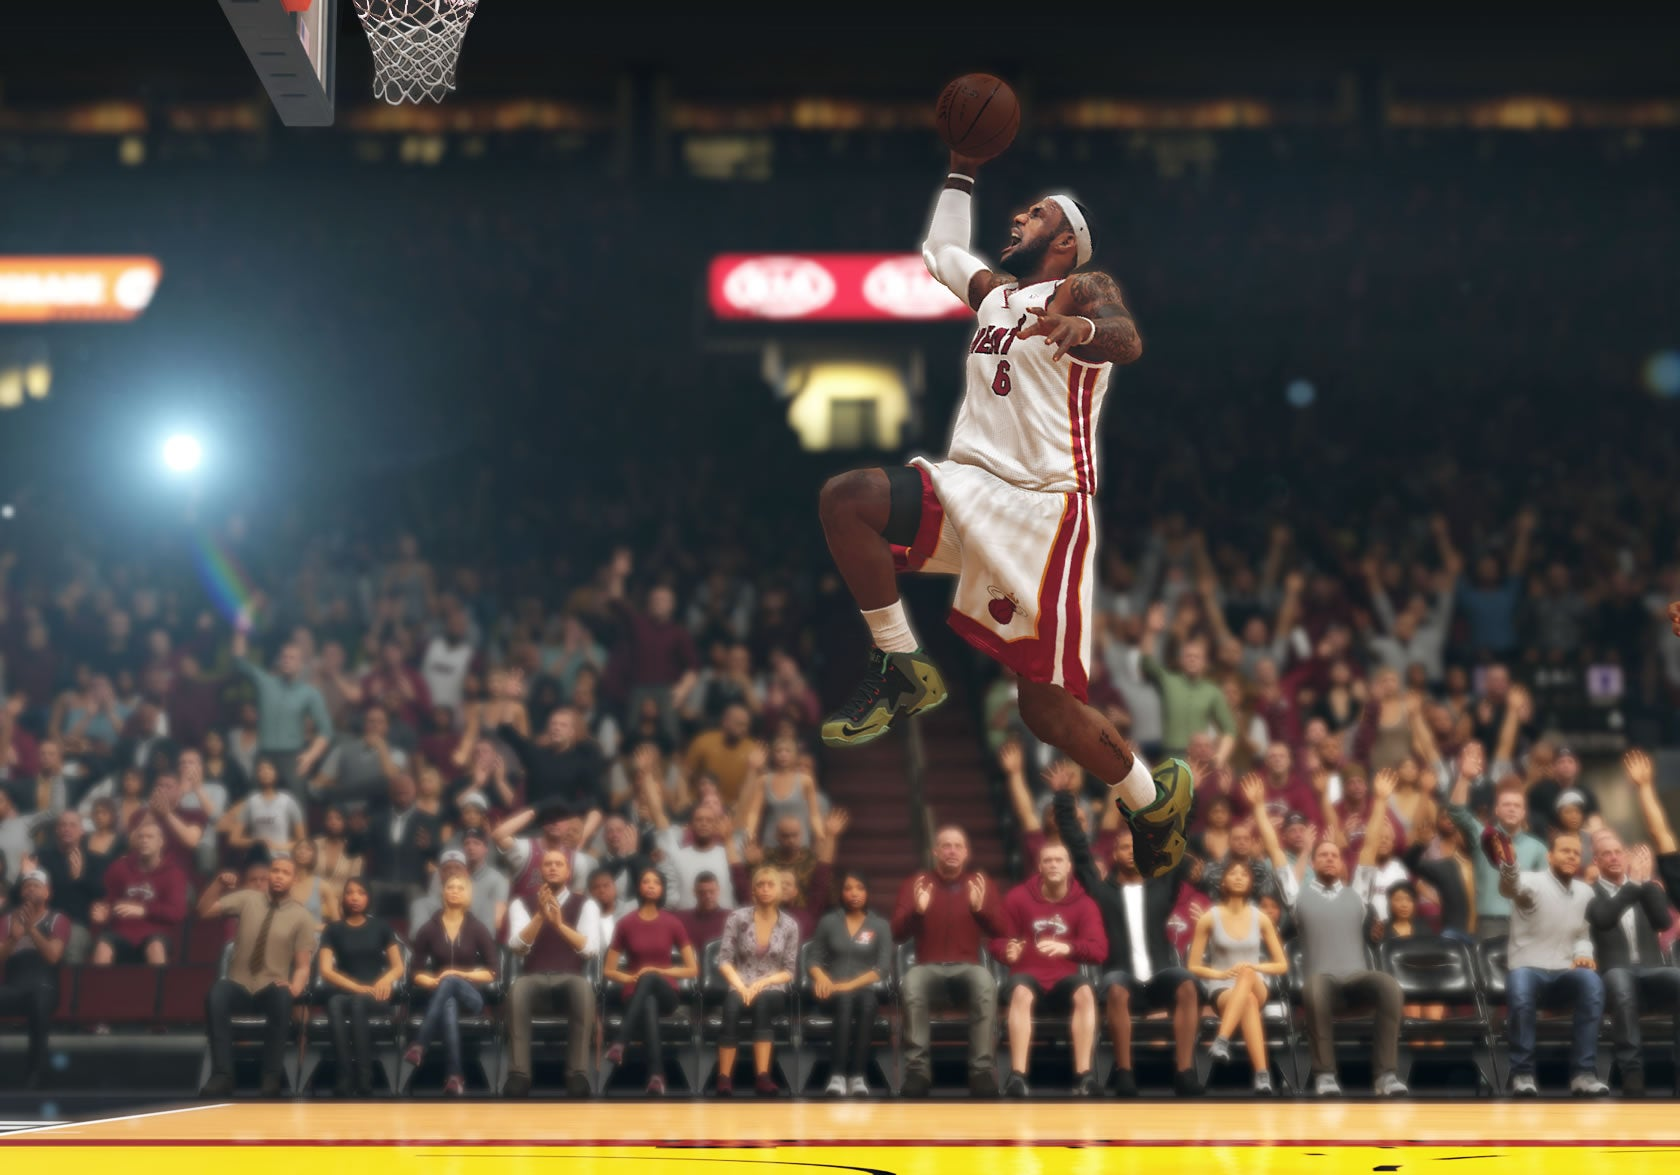 Seventeen NBA Teams Sign On To Appear In NBA 2K Esports